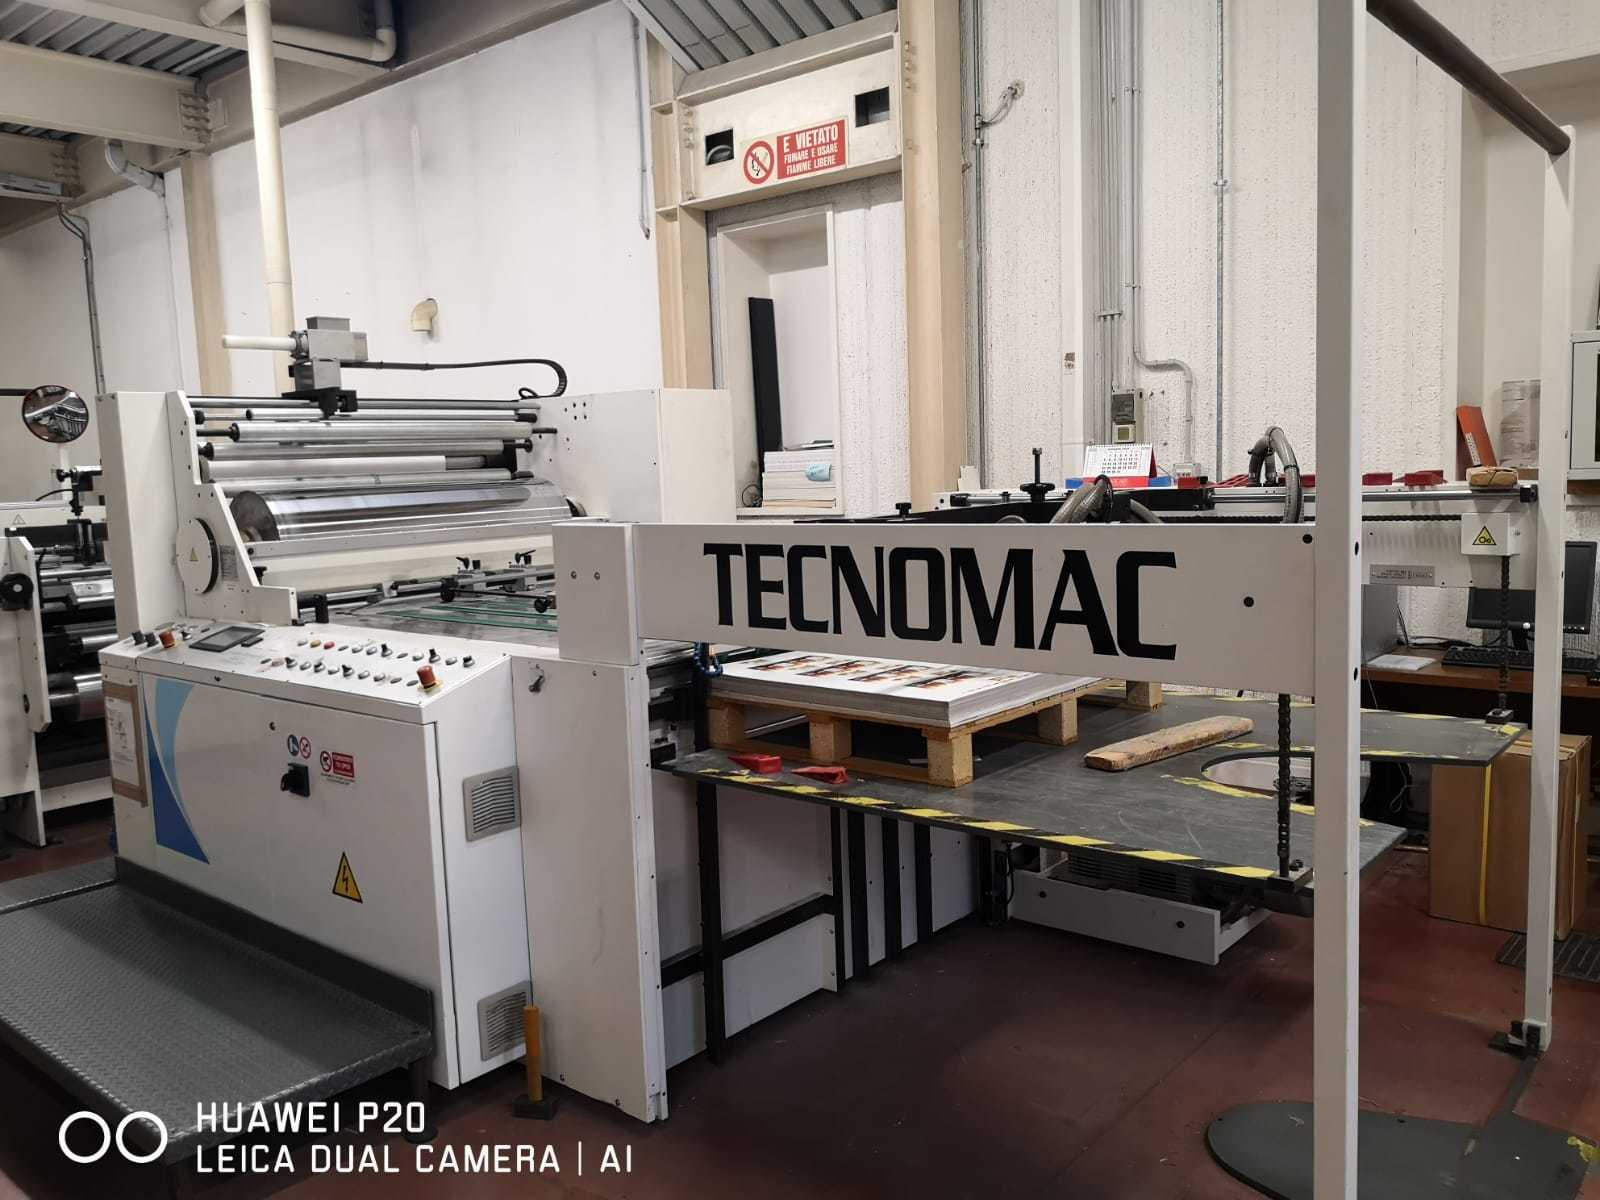 SECOND HAND THERMAL LAMINATOR TECNOMAC FAST 112x140 MANUFACTURED IN 2009